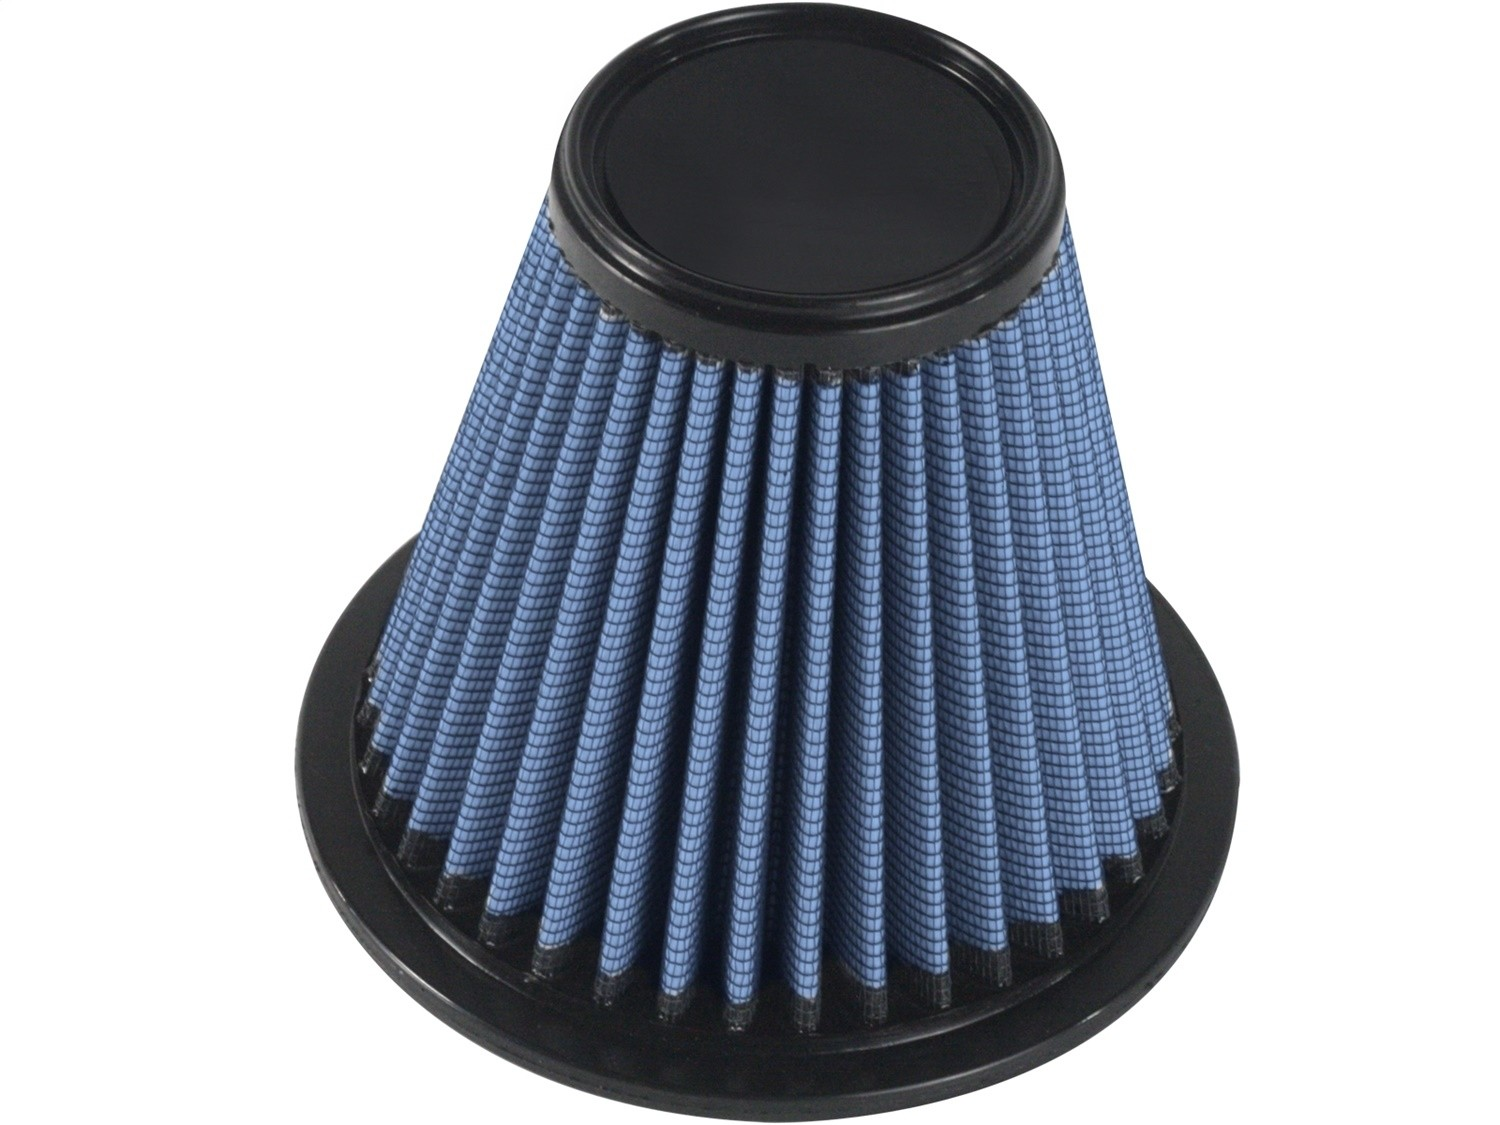 AFE FILTERS - MagnumFlow OE Replacement Pro 5R Air Filter - A5F 10-10004